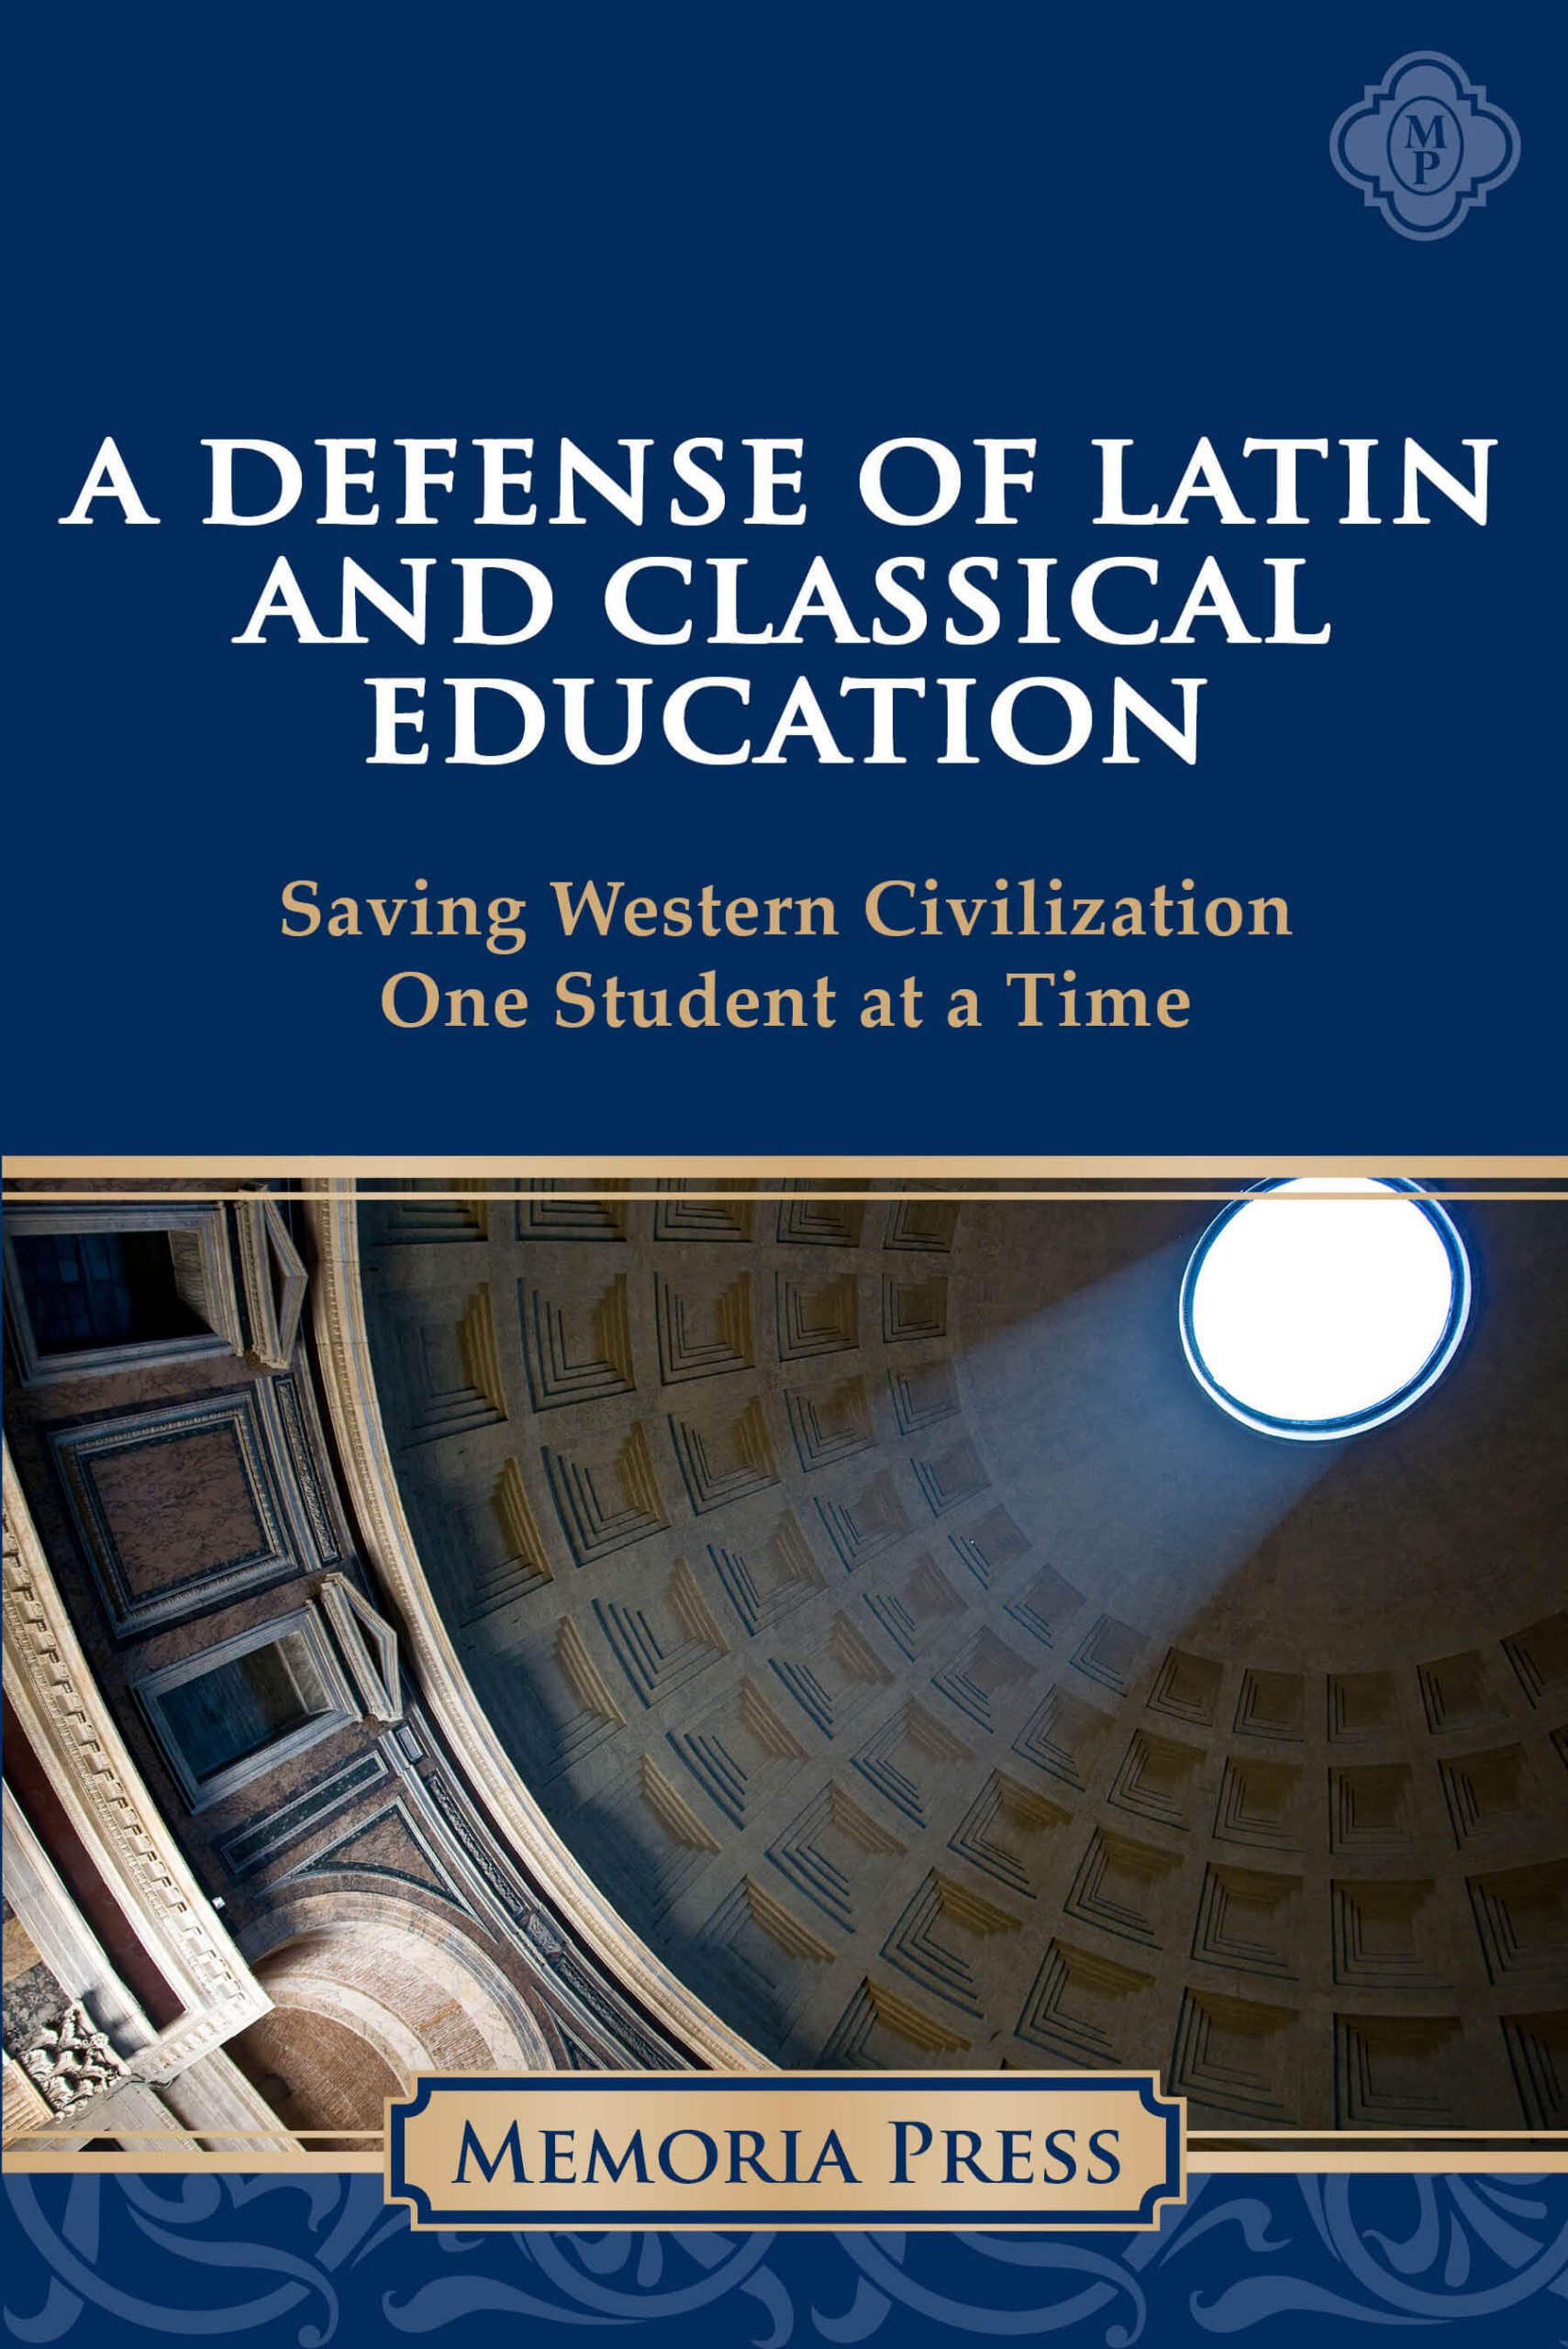 Defense of Latin and Classical Education